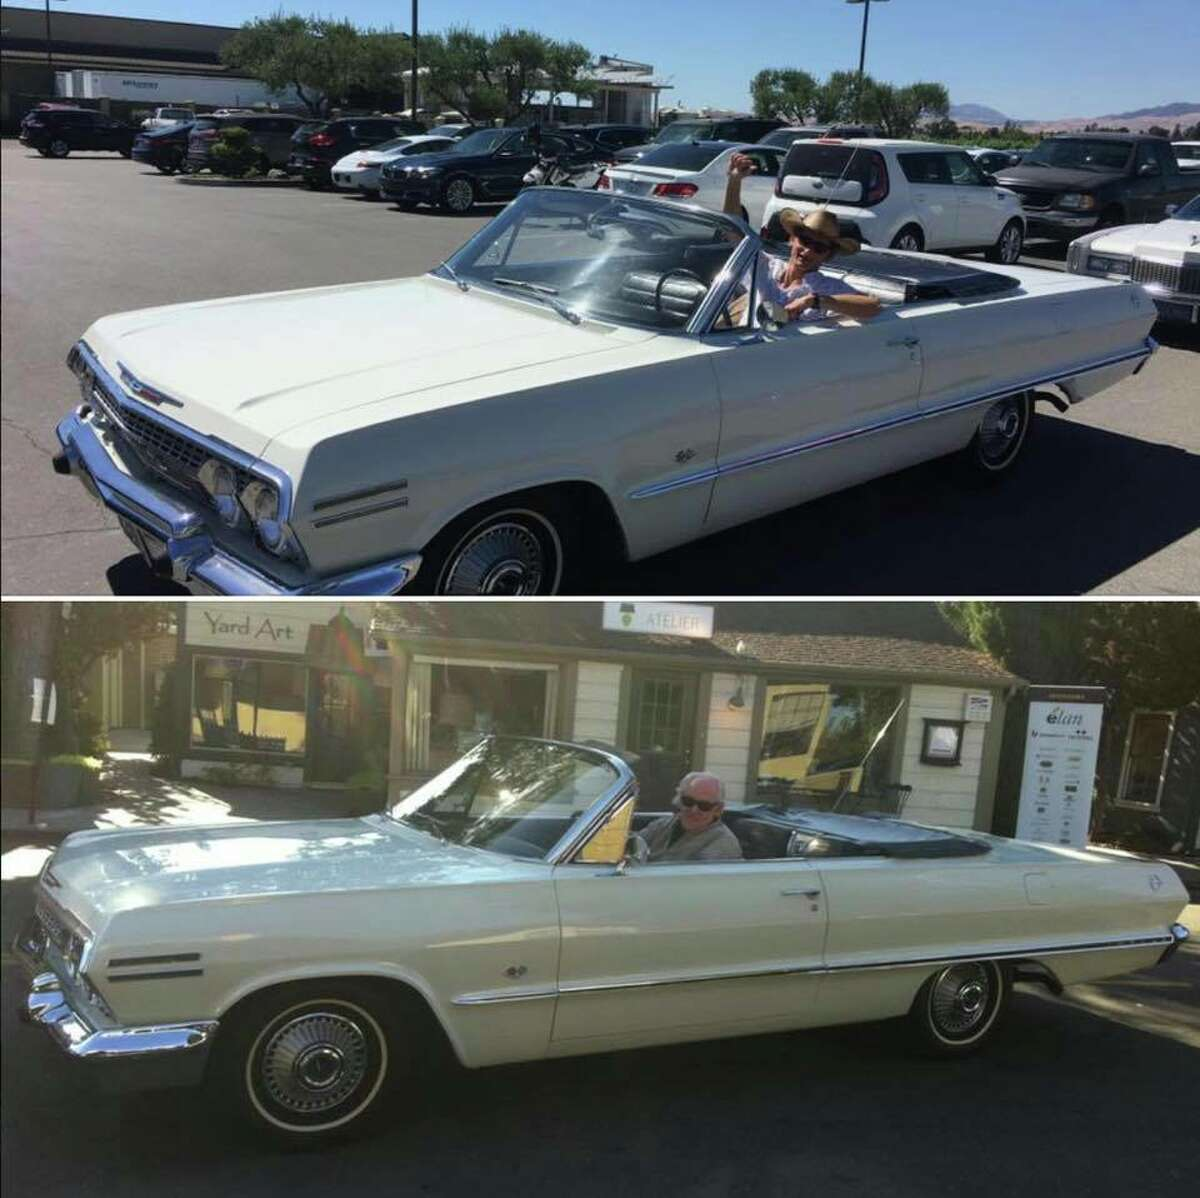 Don Watson's 1963 Chevy Impala was stolen Saturday from a gated area at the Goodguys Rod & Custom Association